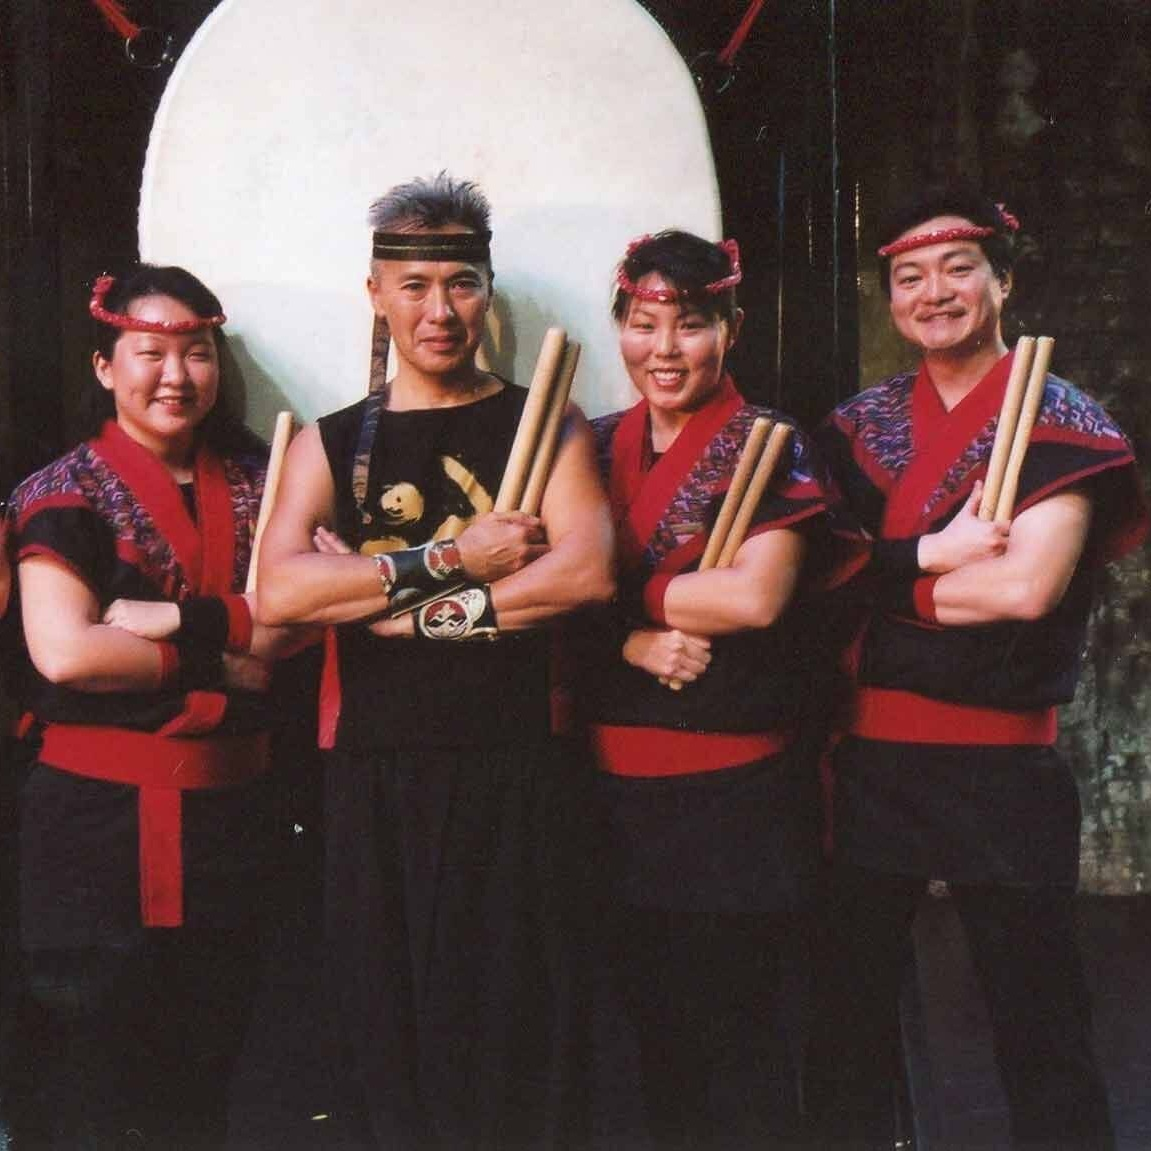 TENCHI TAIKO OF MU DAIKO : DRUM OF HEAVEN AND EARTH - Directed by RICK SHIOMIDecember 2nd- December 11th, 2005